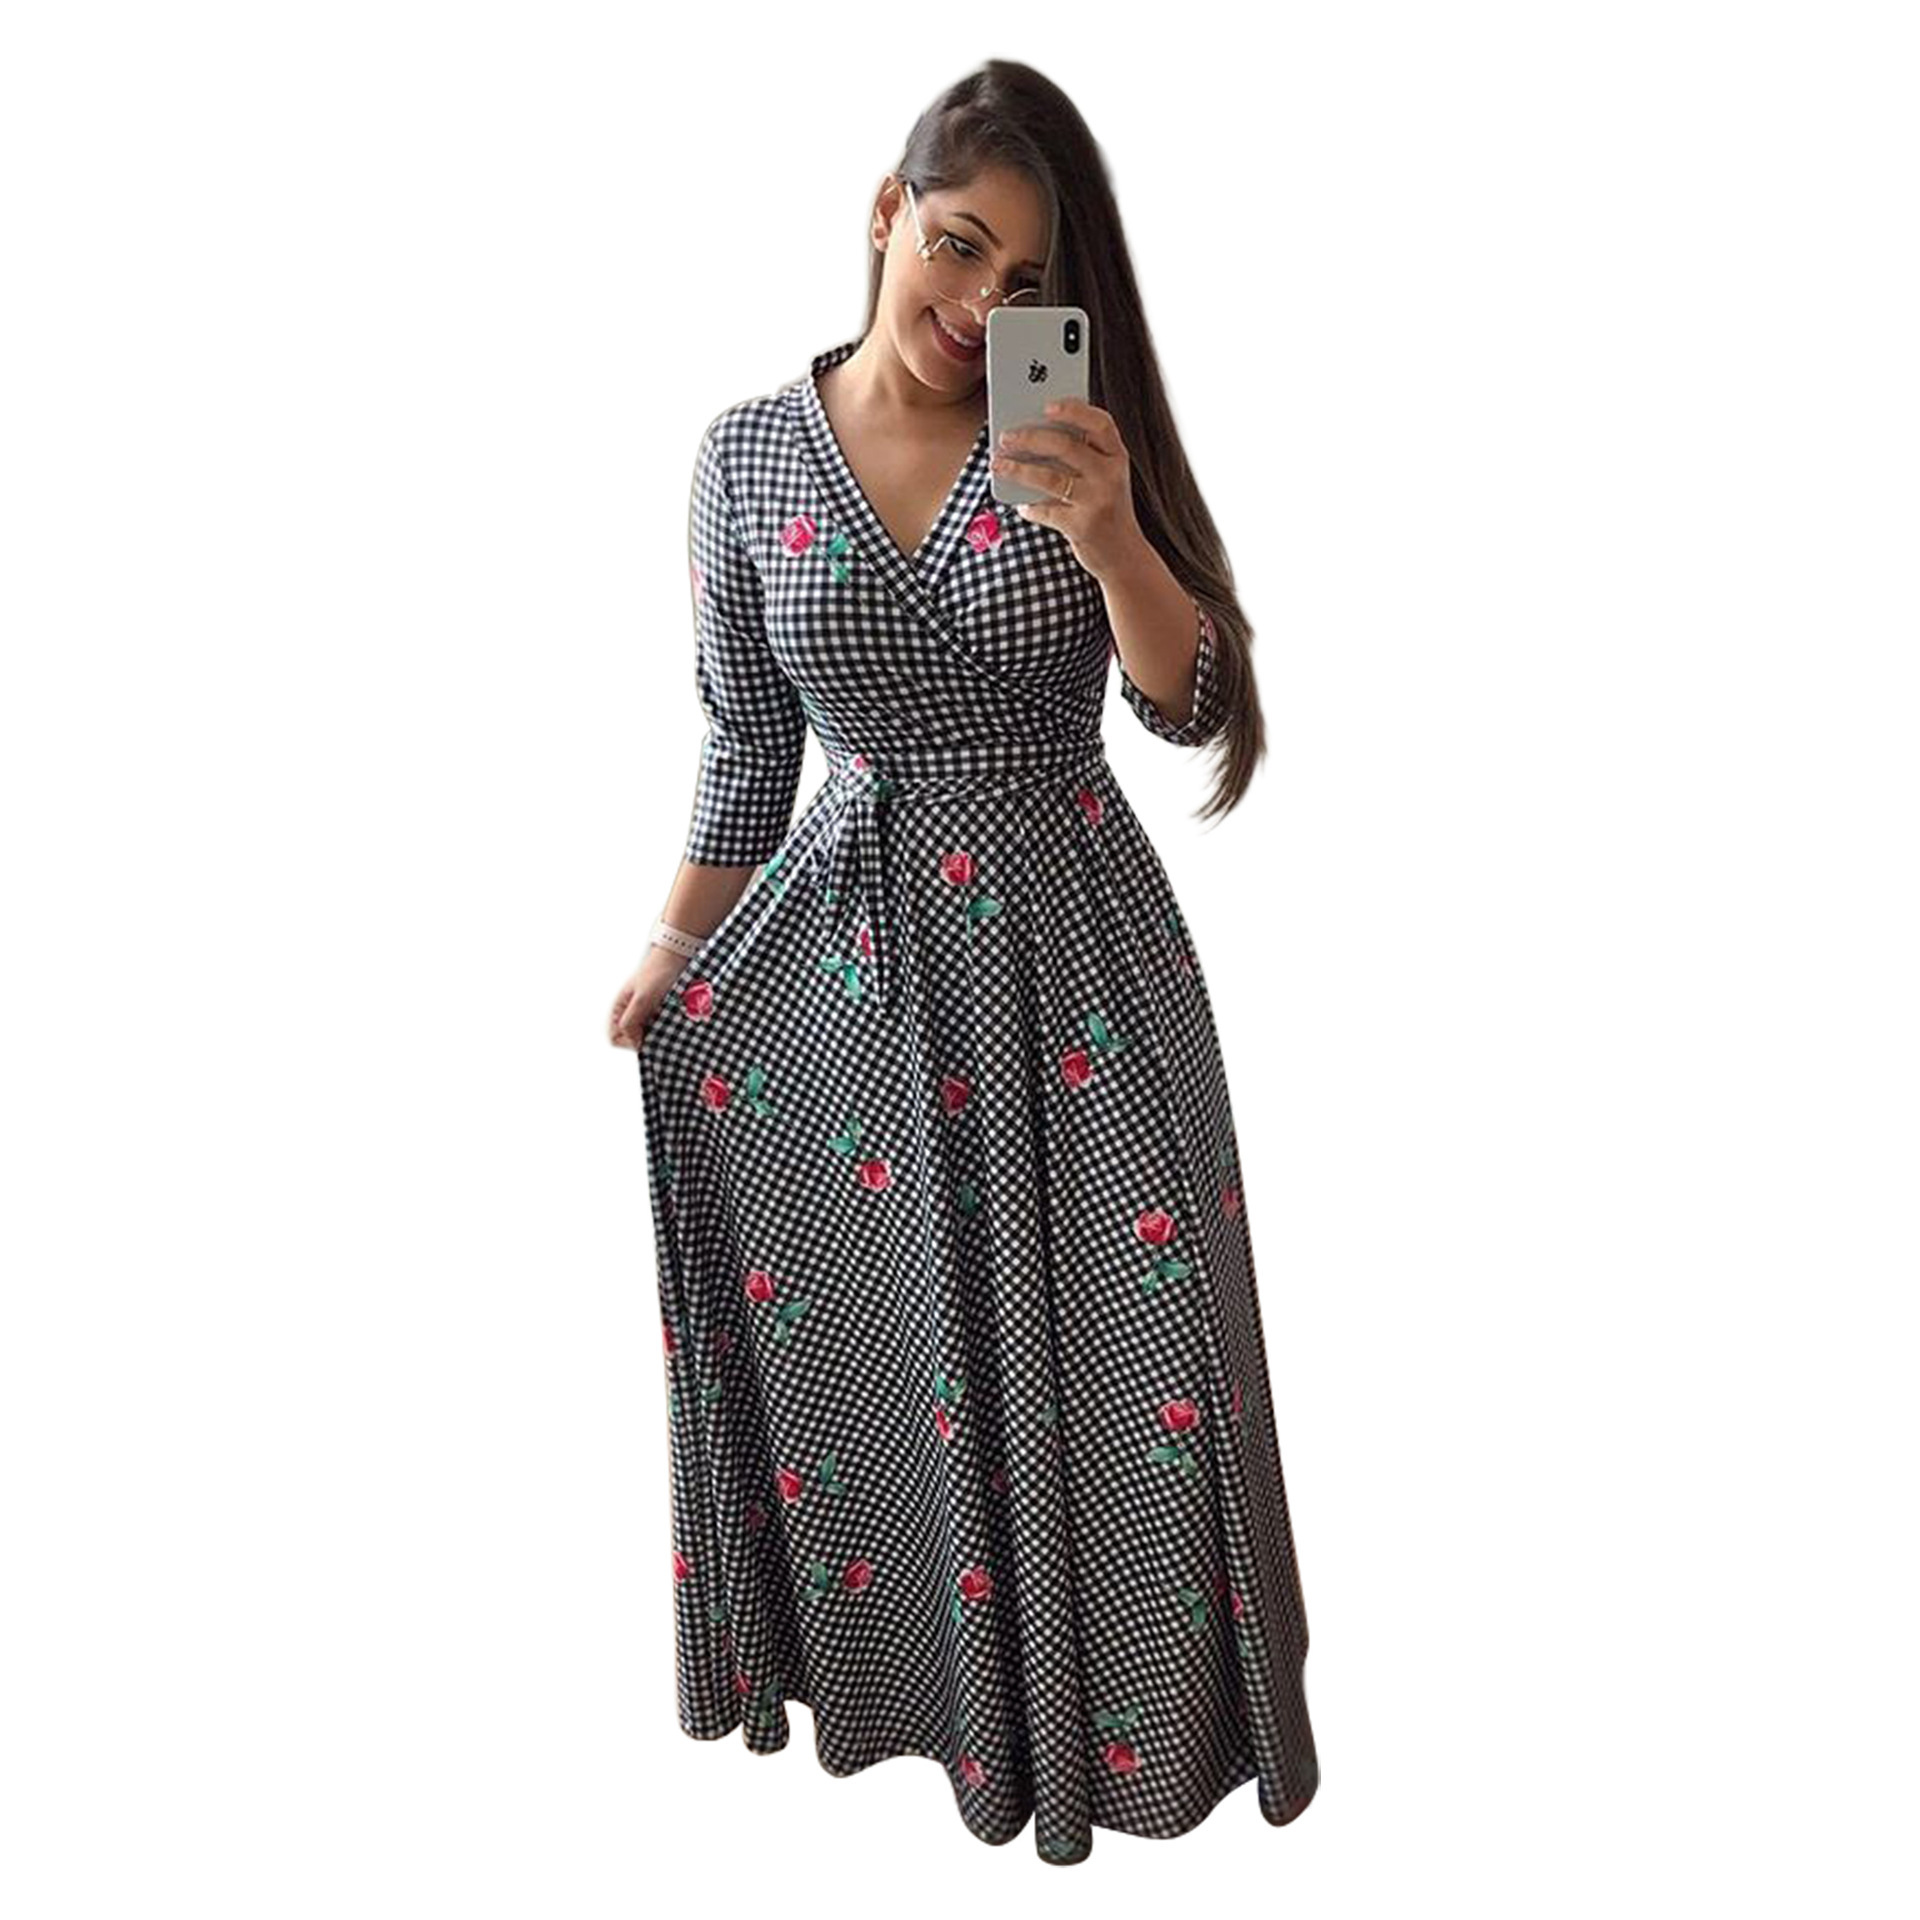 H66fd783307744435b84e799944097d8cg - Oufisun Spring Sexy Deep V Neck Women's Dress Bohemia Tunic Maxi Dresses Elegant Vintage Flowers Print Dress Vestidos Plus Size